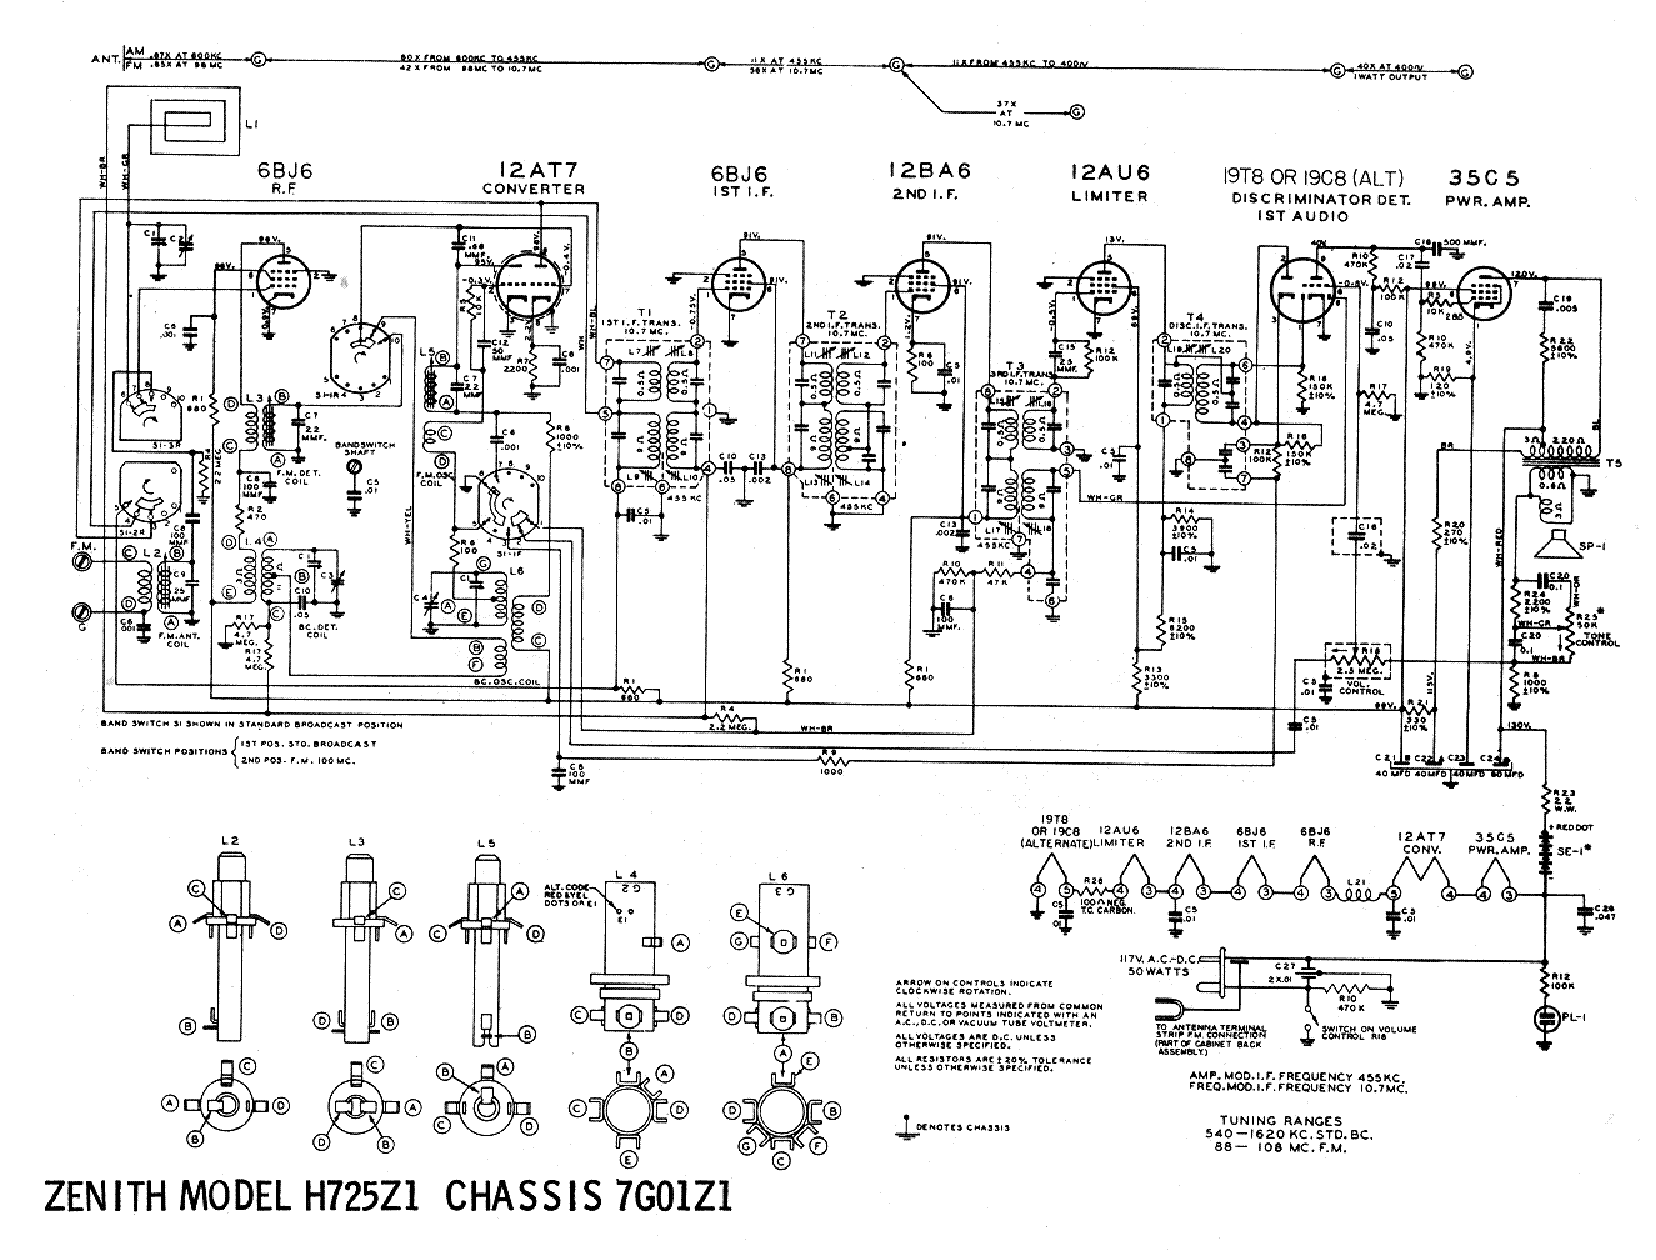 ZENITH H725Z1 SCH Service Manual download, schematics